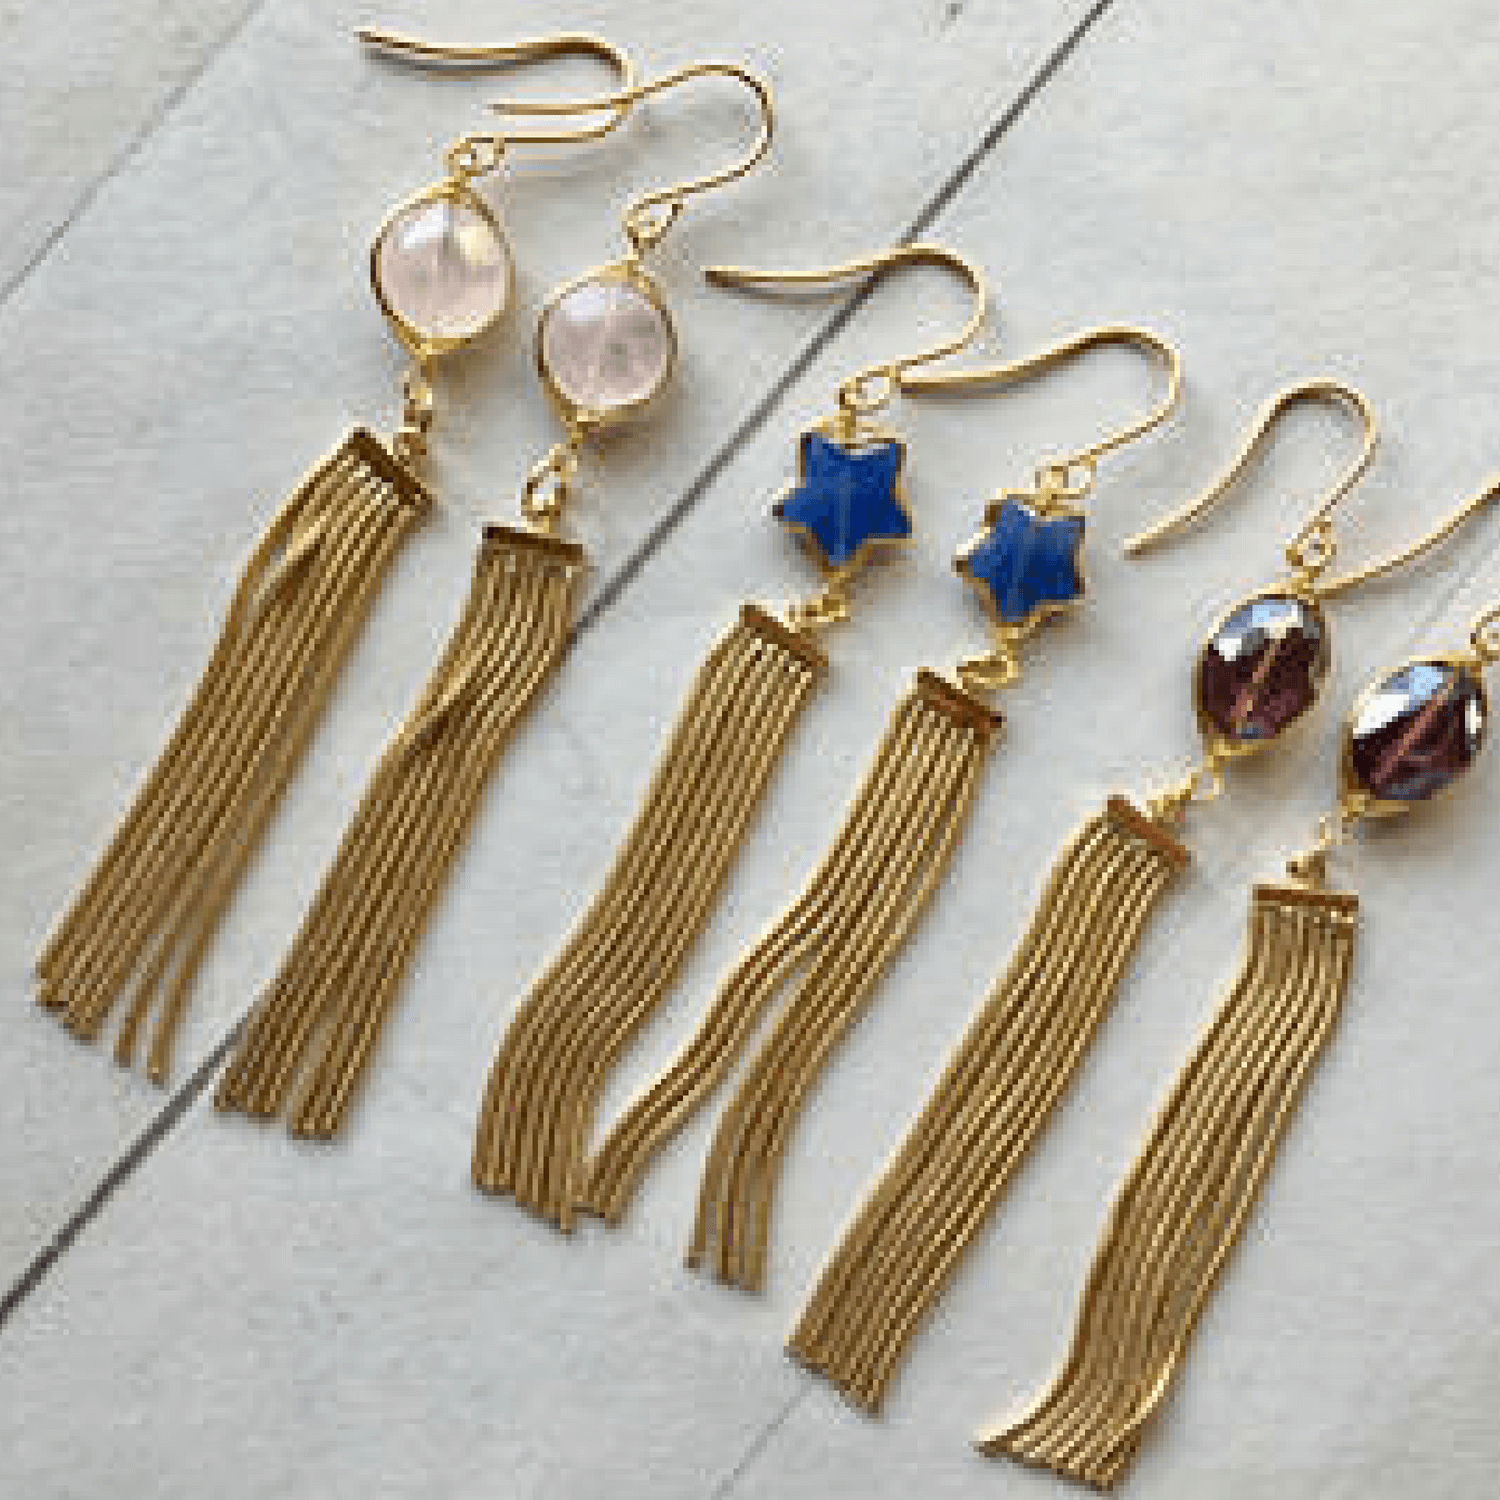 Jewerly Making Workshop with Jessica Roche Liv Rose Jewerly at The Craft.ed Studio Concord MA September 2018-5.png